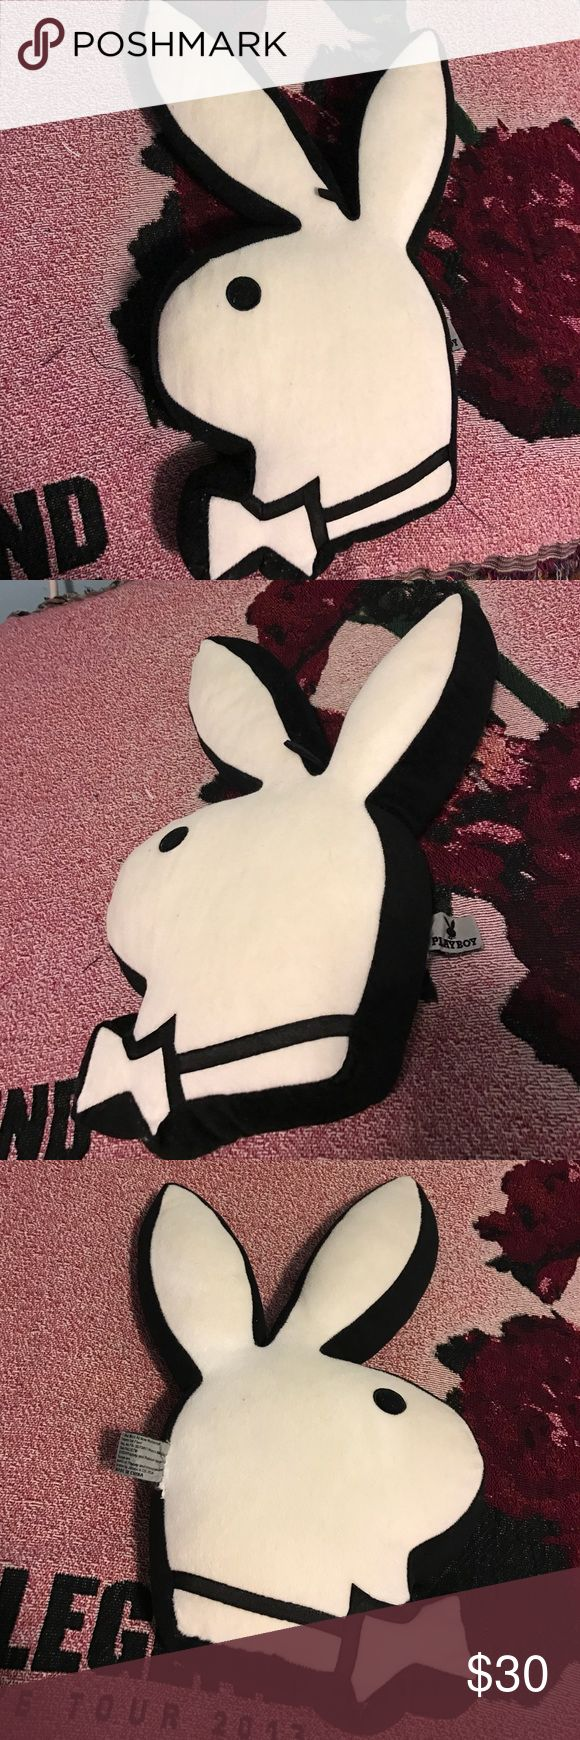 Playboy medium throw pillow Great condition, smoke free home. Thank you for looking and feel free to ask any questions. Playboy Other